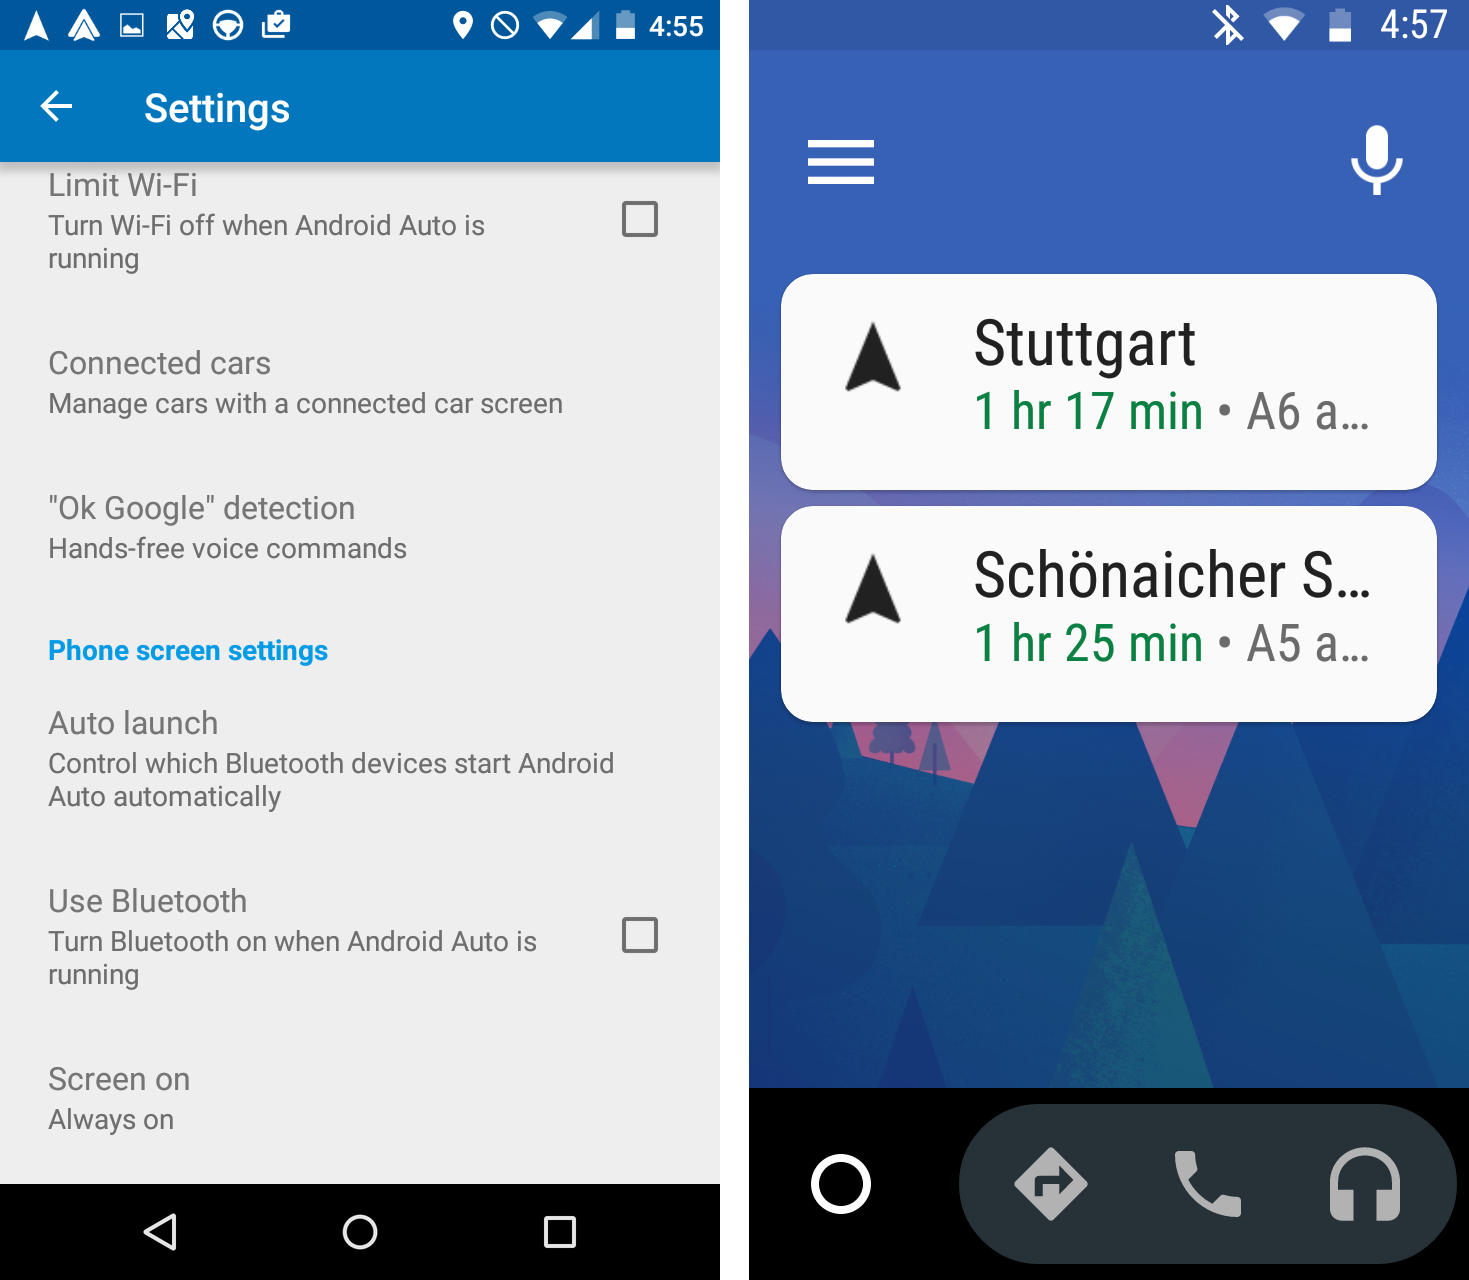 Figure 29: Google Android Auto – settings auto launch when Bluetooth connects (left). Google Android Auto – home screen with navigation recommendations (right).